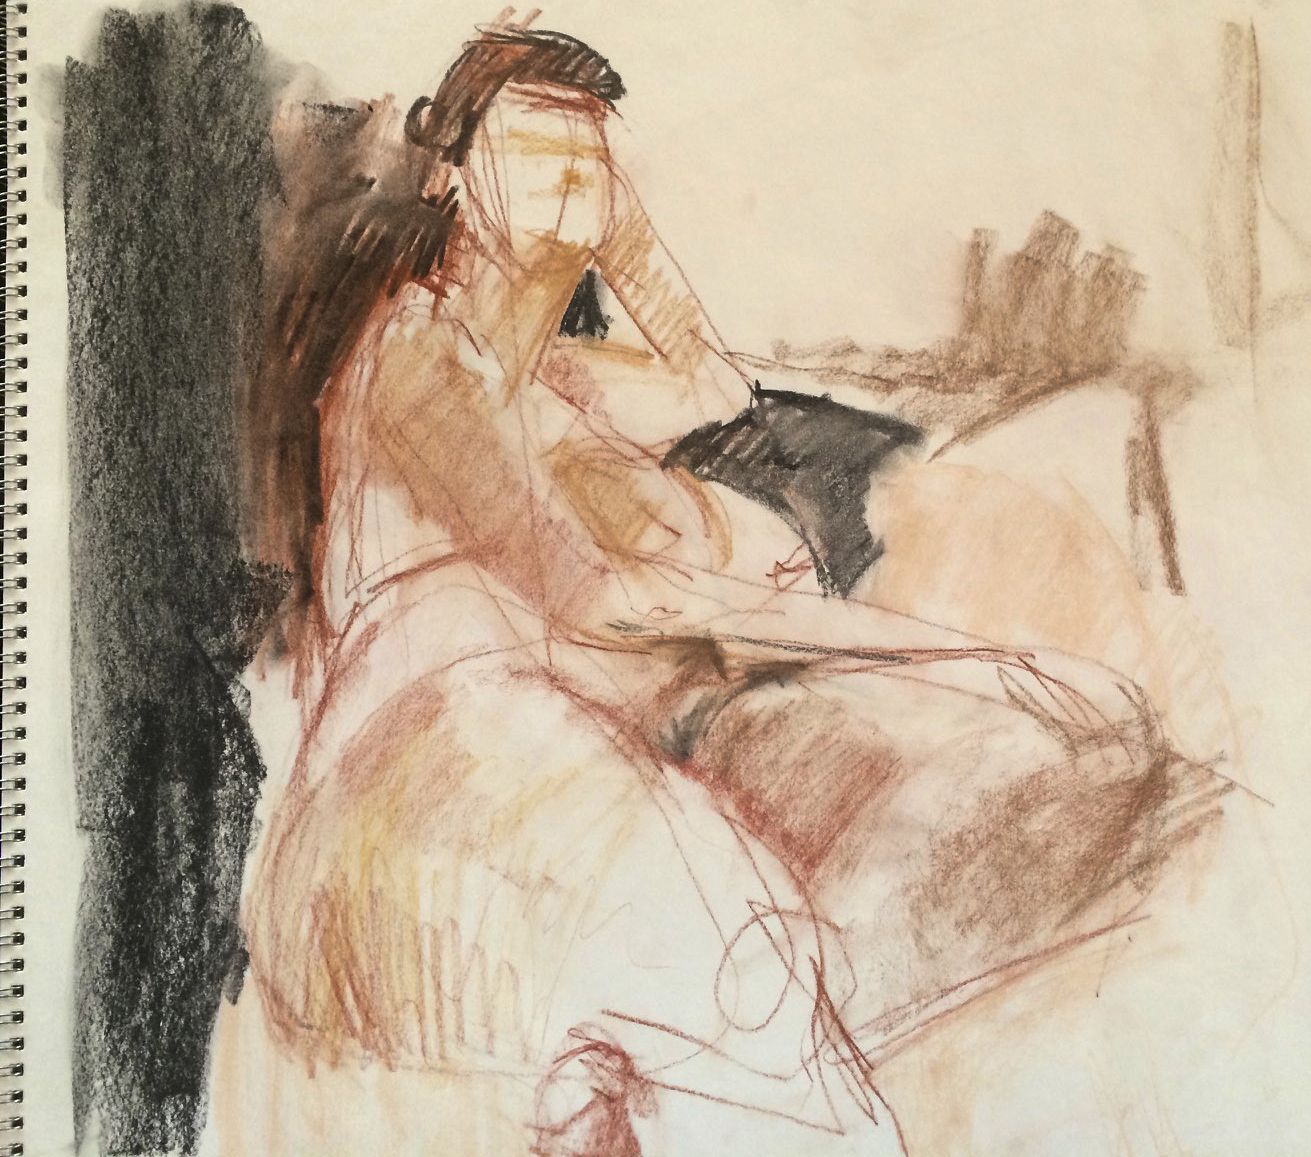 A ten minute sketch using charcoal, pastel and conte